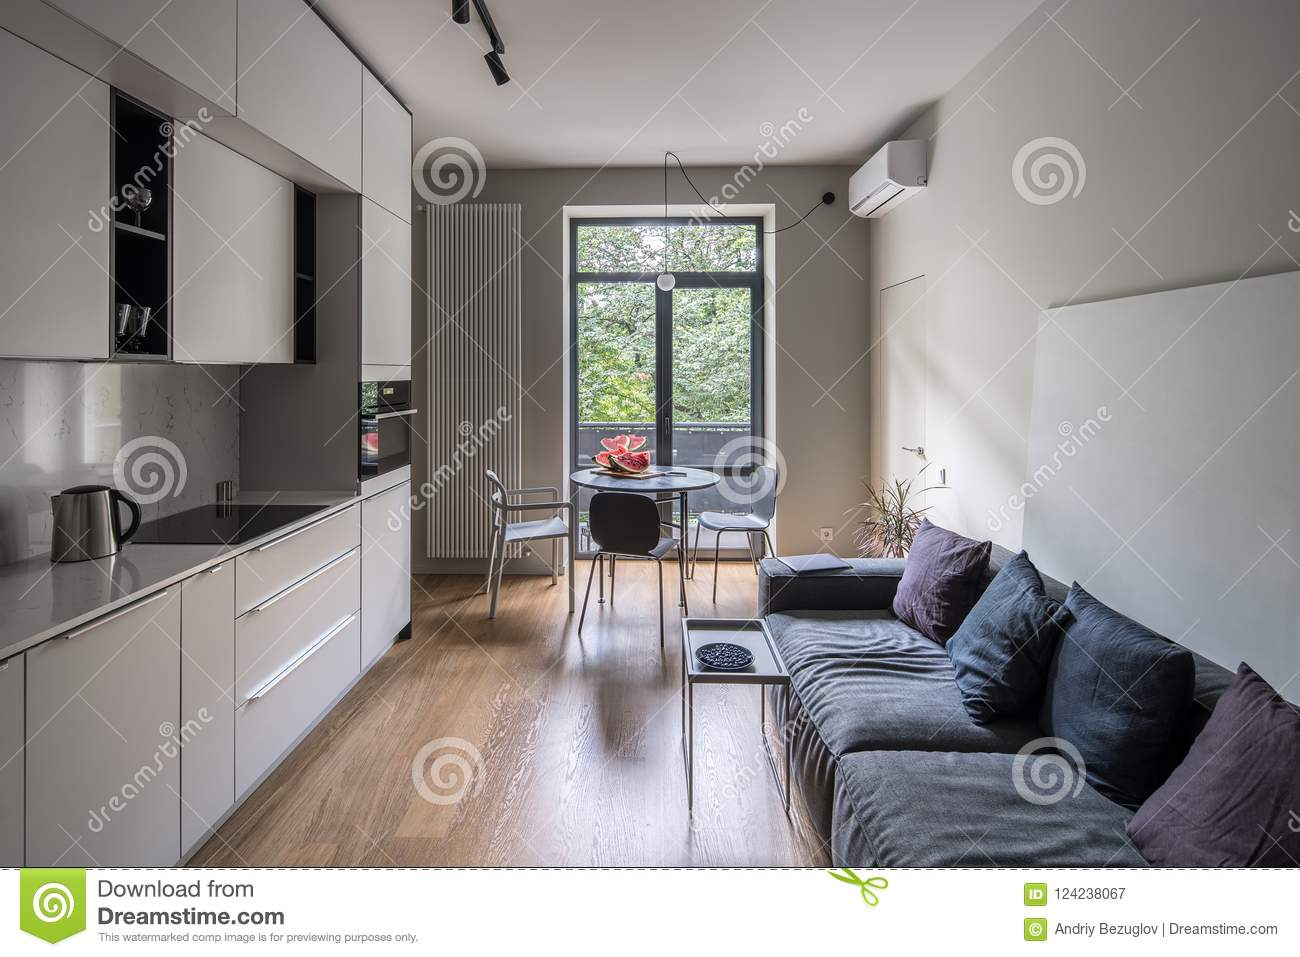 nice kitchen in modern style with light walls stock image image of